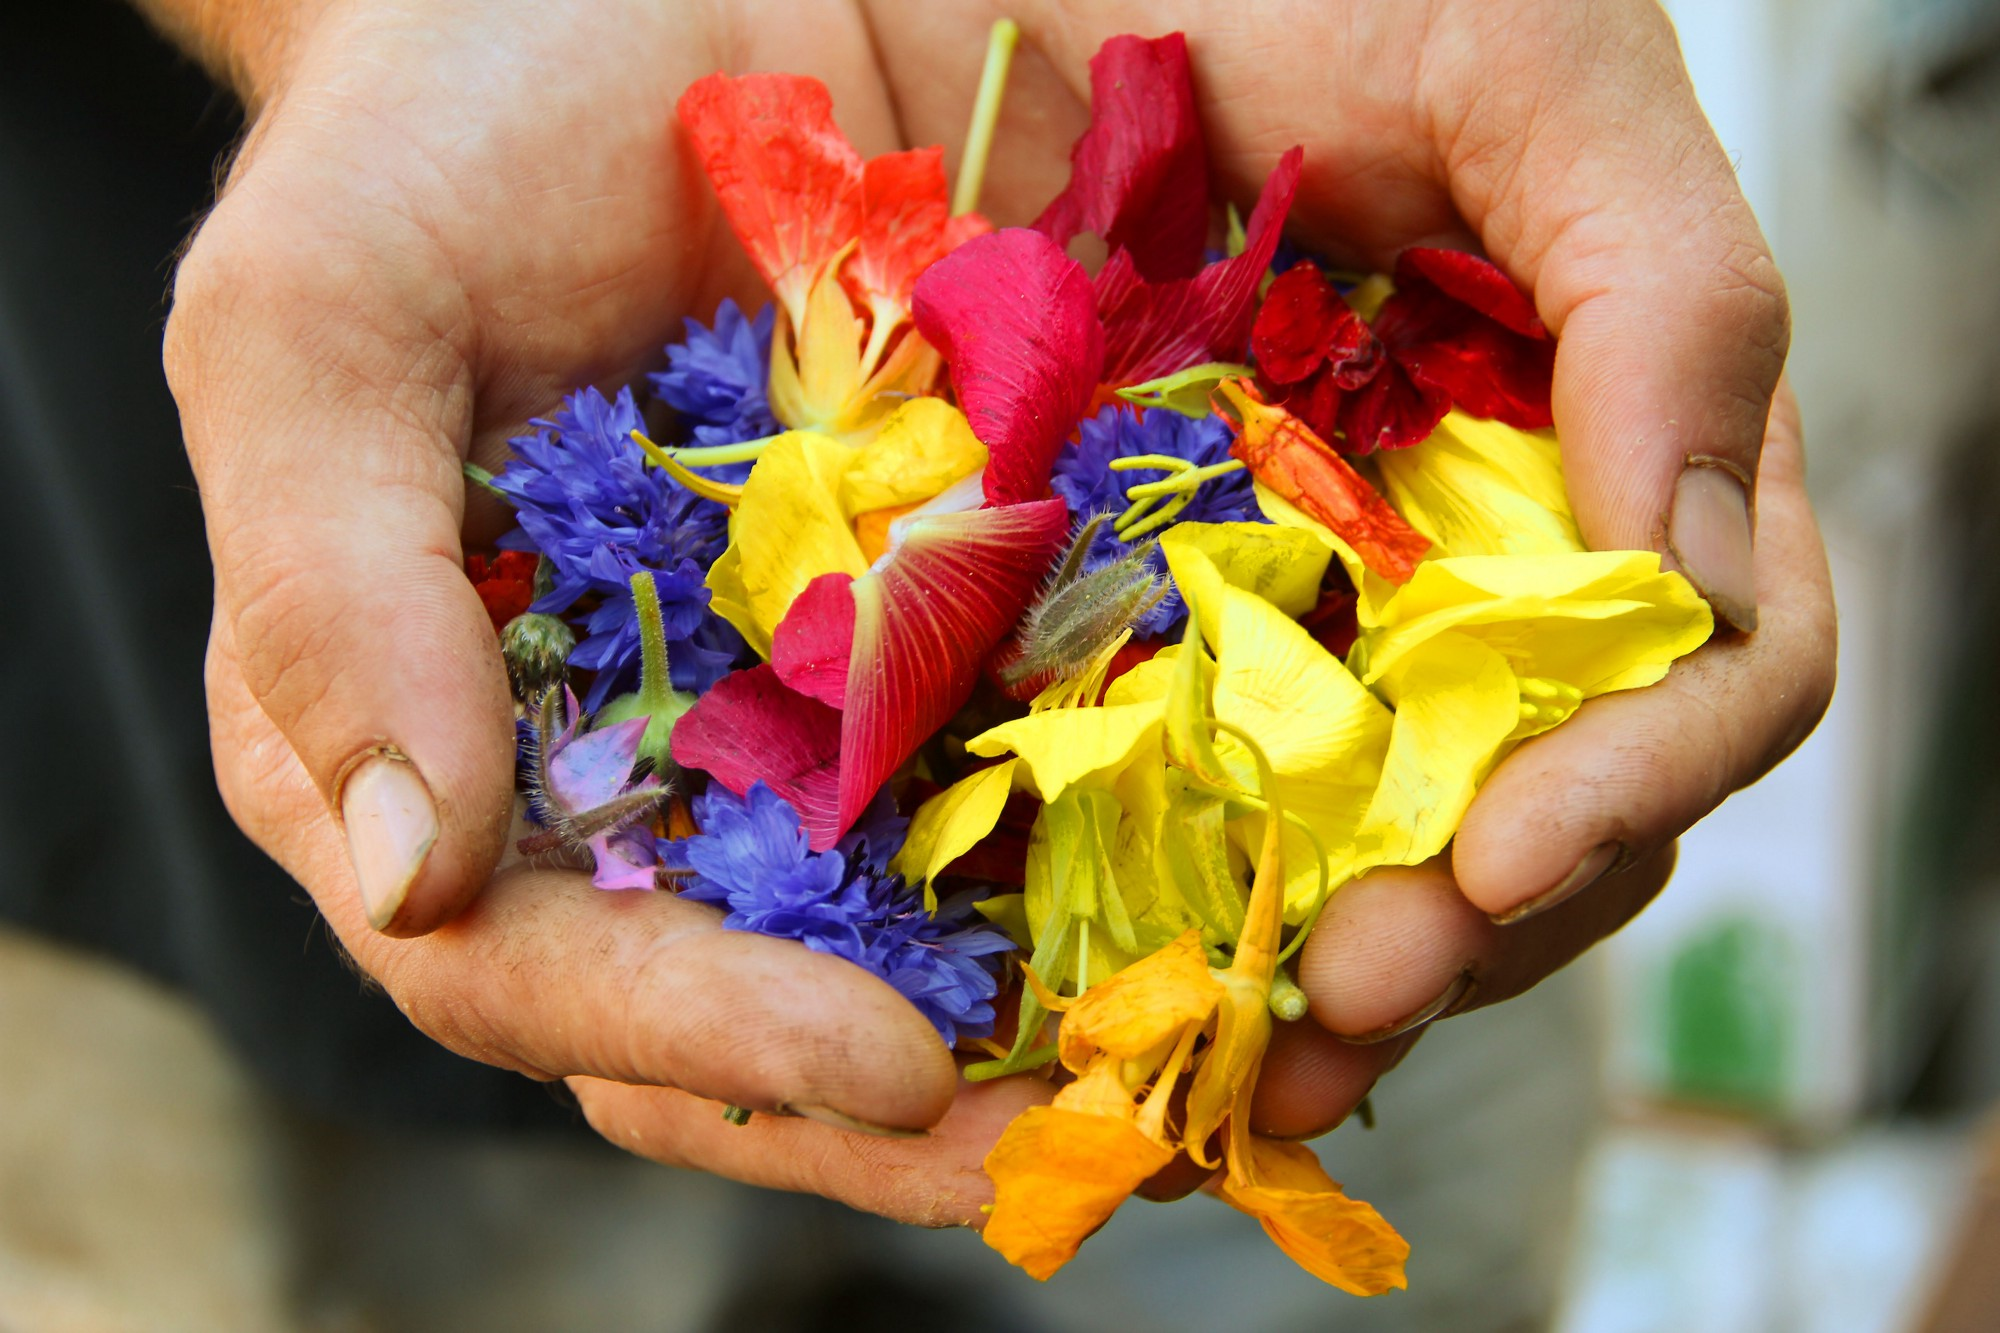 Hands offering flowers to someone.